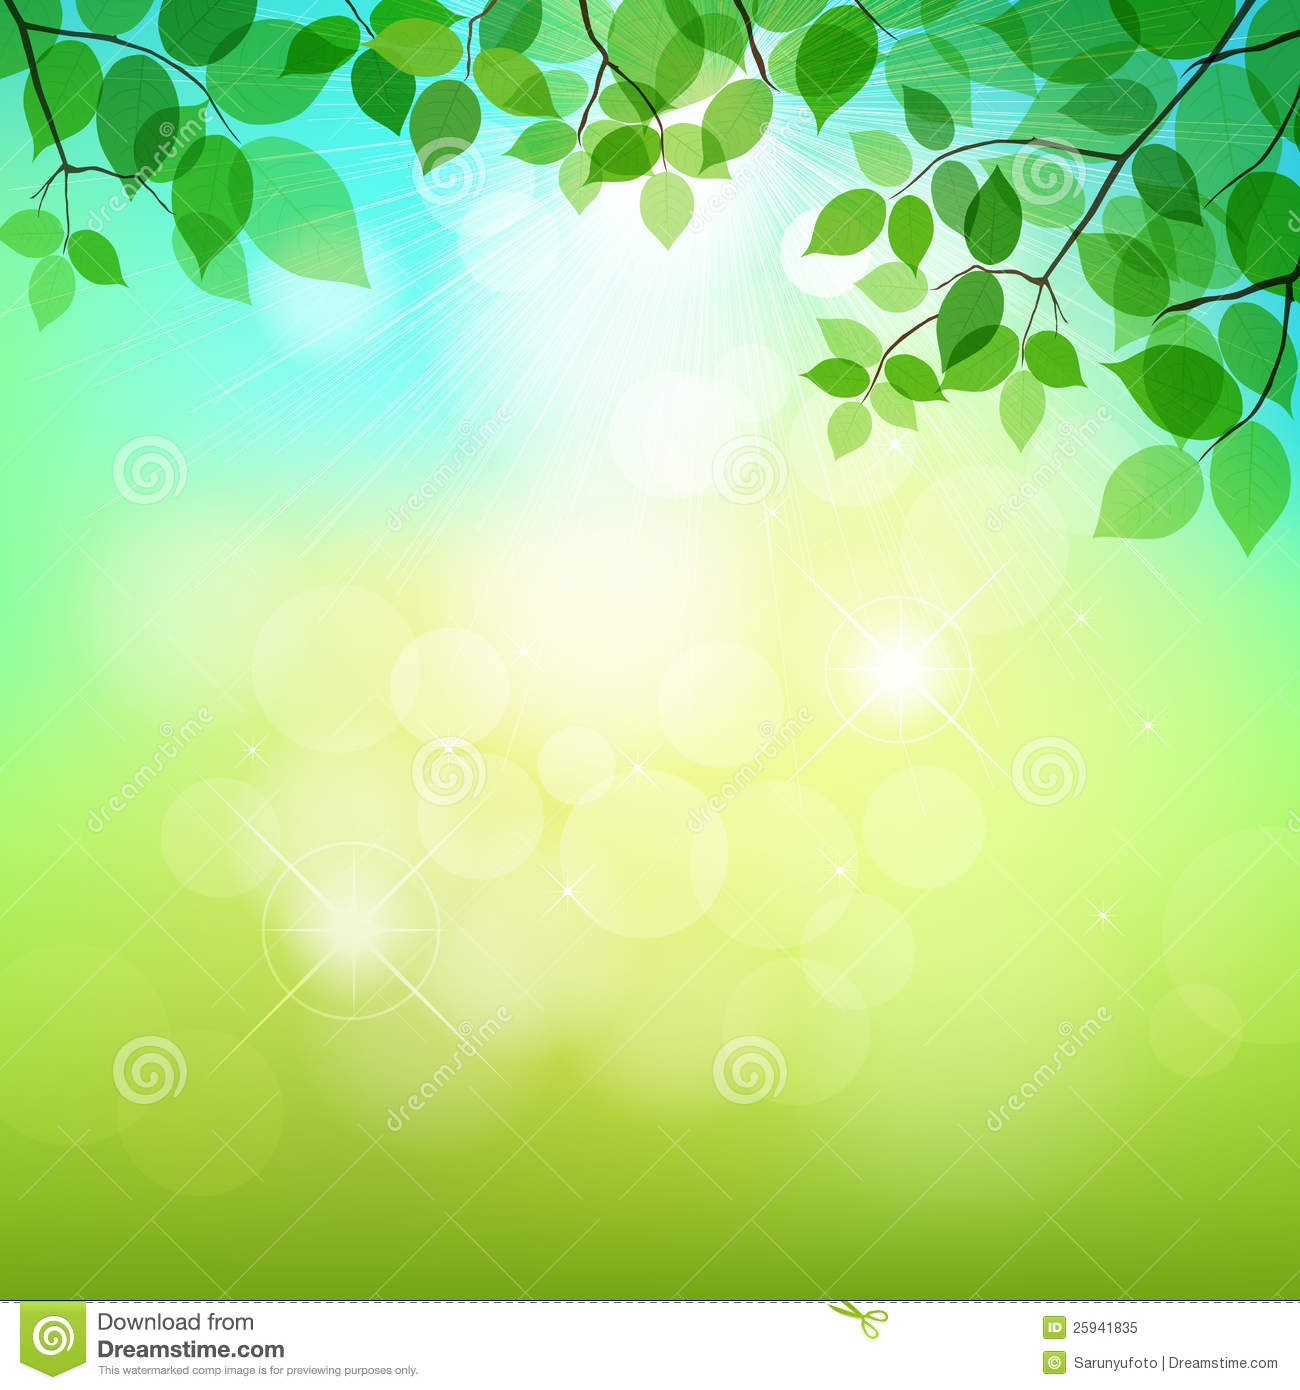 Nature Images 2mb: Green Leaves Natural Background Royalty Free Stock Photo